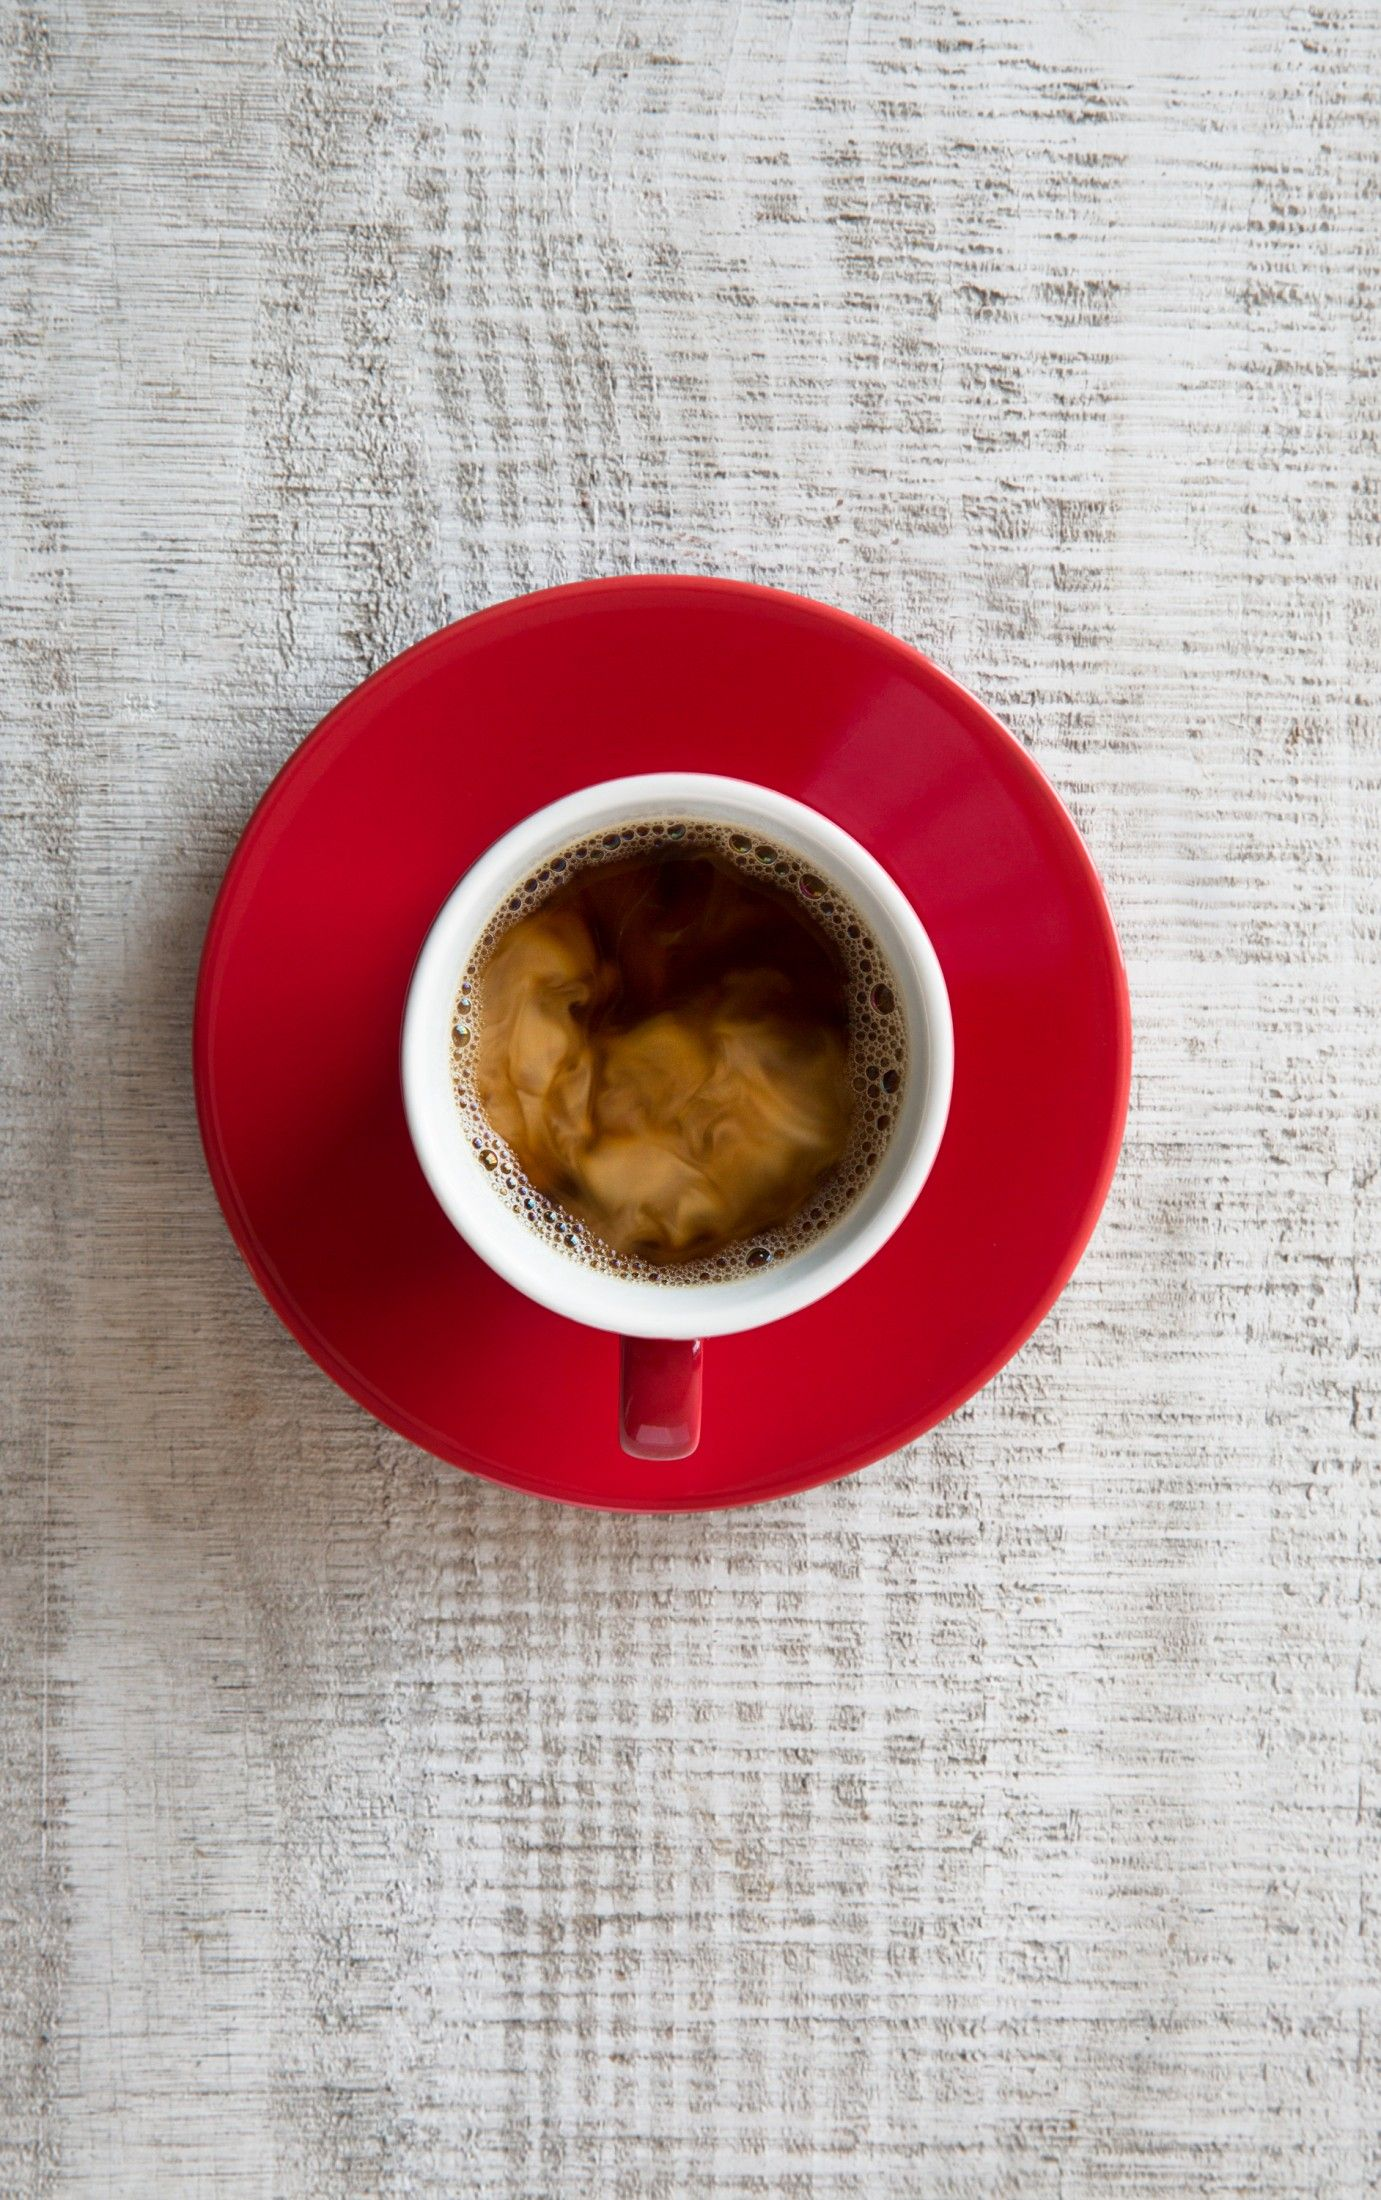 Simple, classic coffee made fresh by the coffee makers of